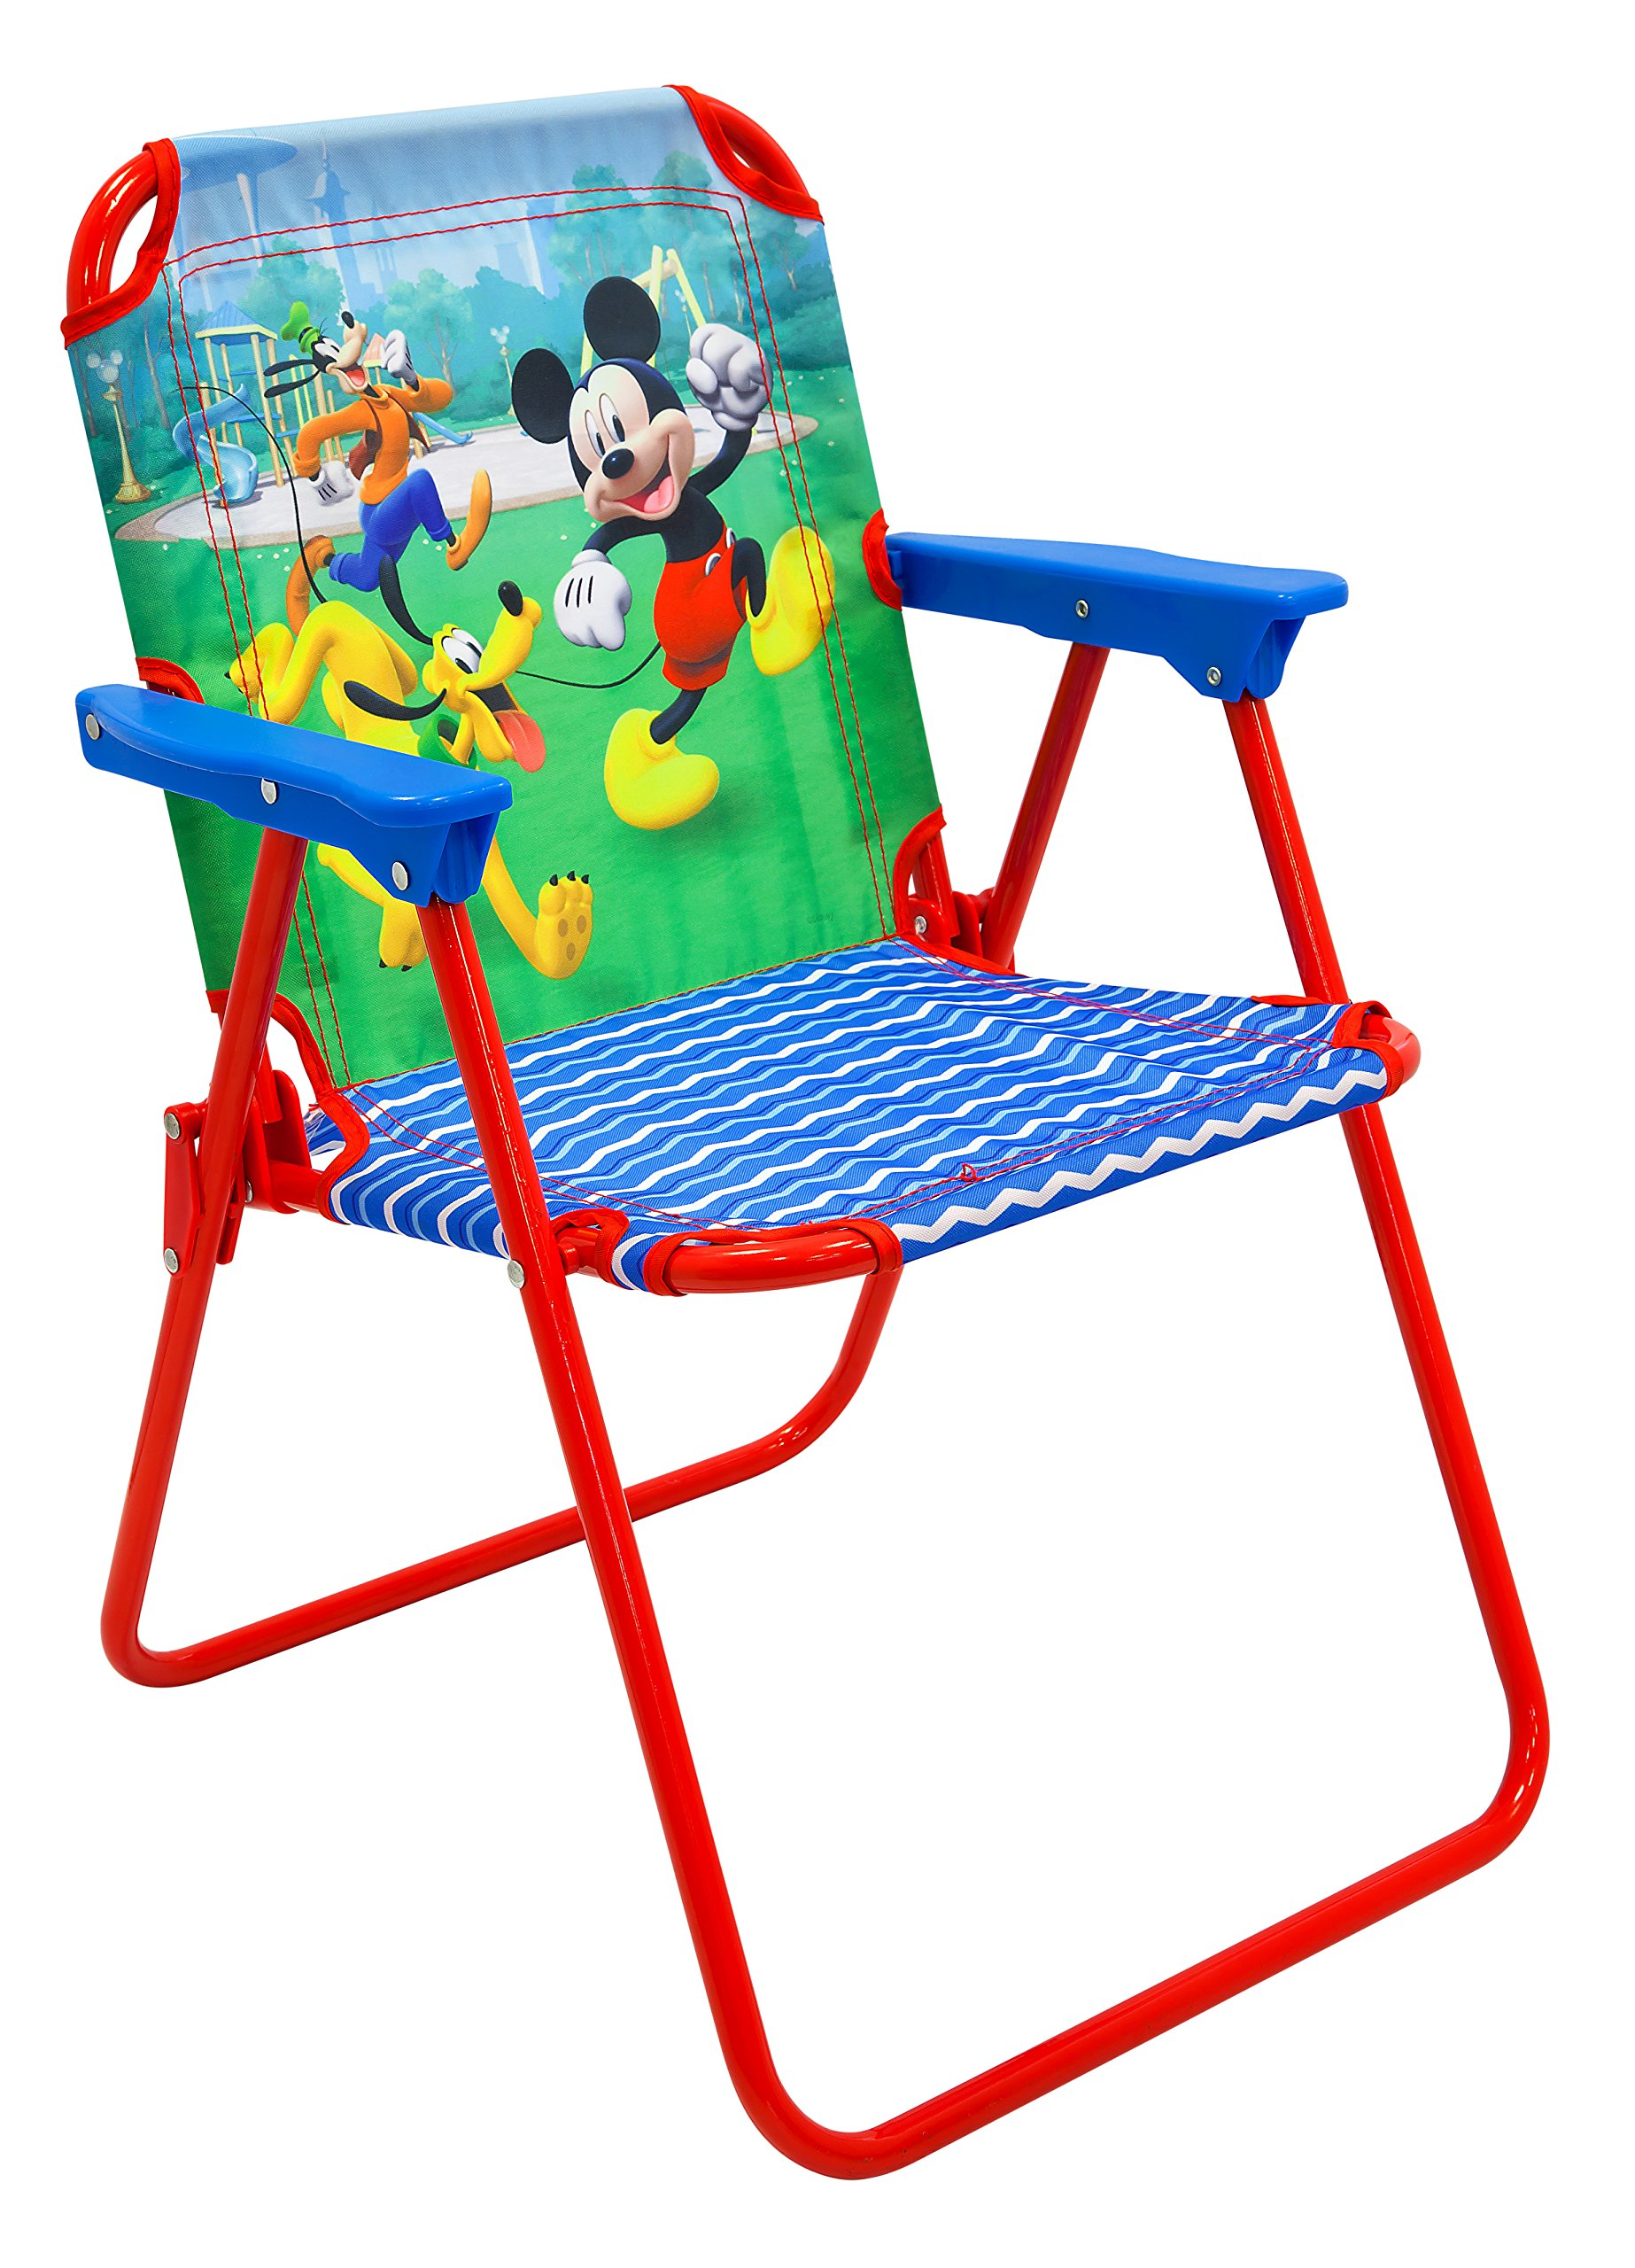 Mickey Patio Chair for Kids, Portable Folding Lawn Chair by Patio Chair